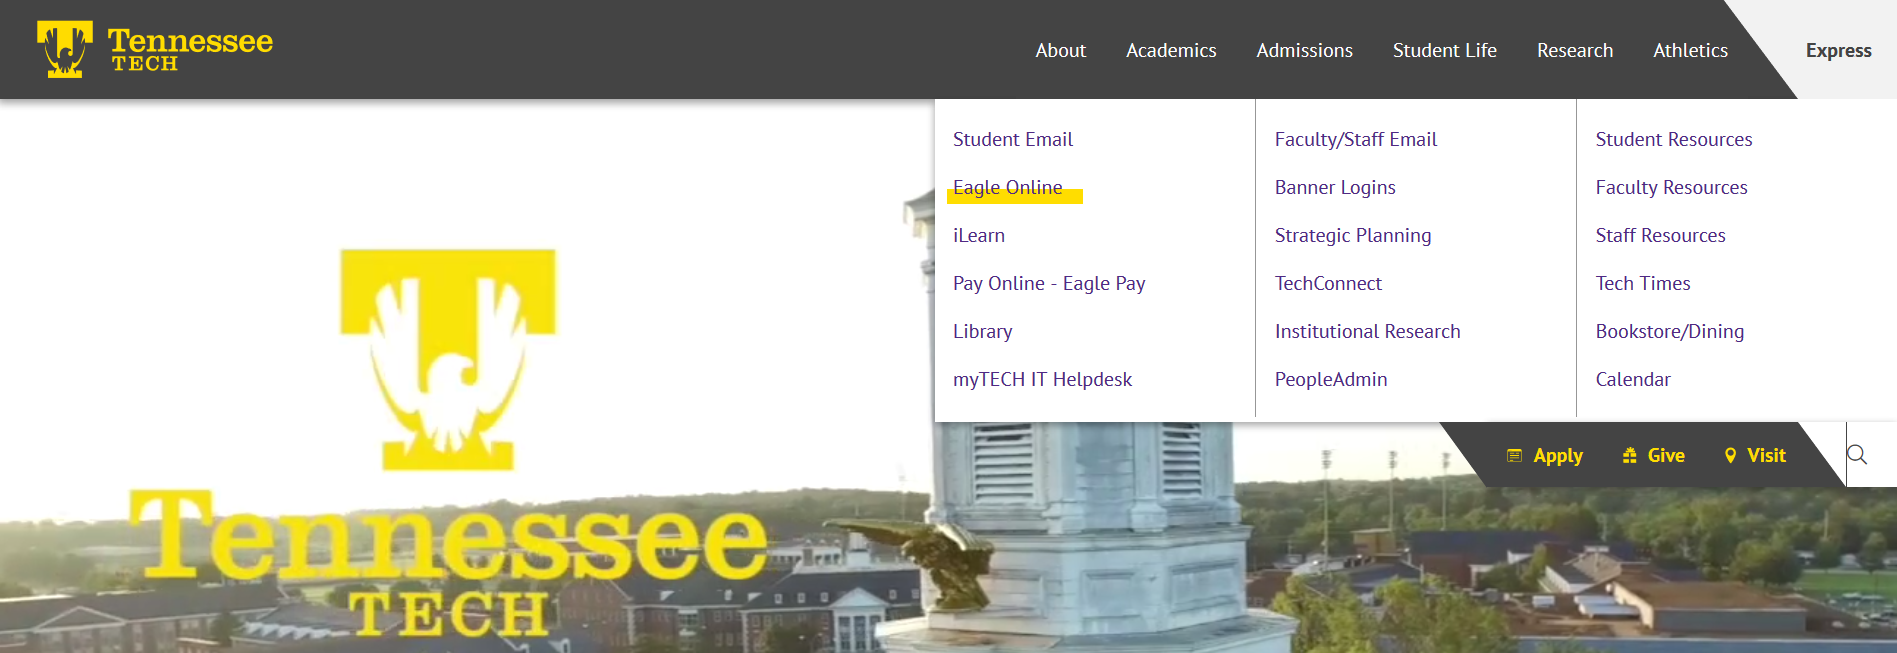 tntech.edu homepage